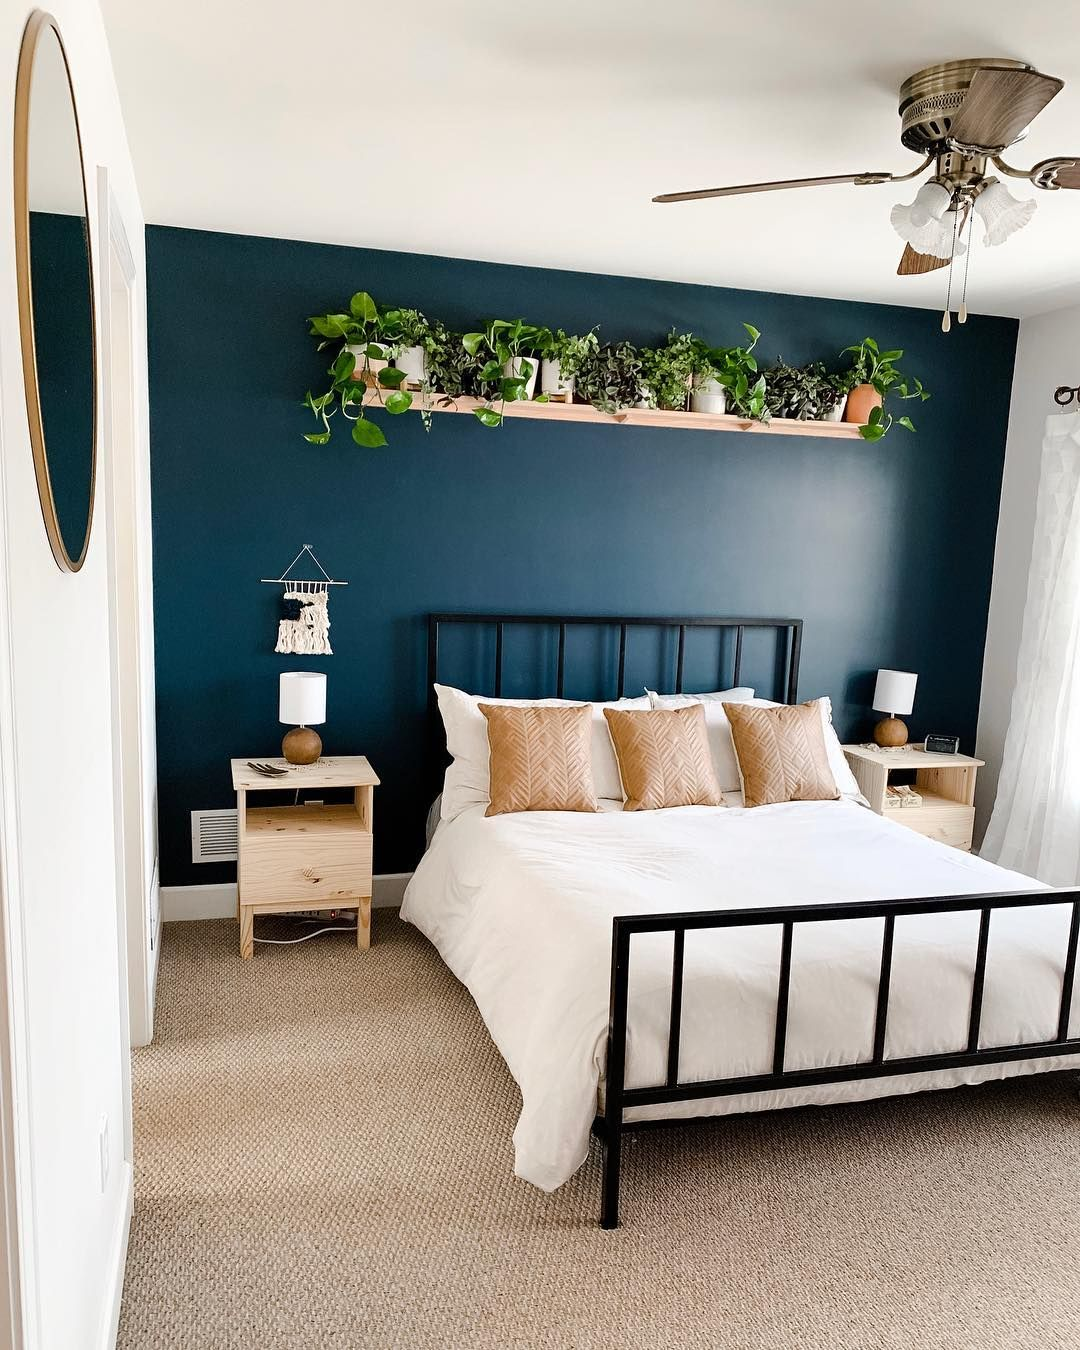 Plain And Simple Accent Walls Are Awesome Morgan Farren Mrs Farren On Instagram Chose Sea Serpe Bedroom Interior Home Decor Bedroom Modern Bedroom Decor